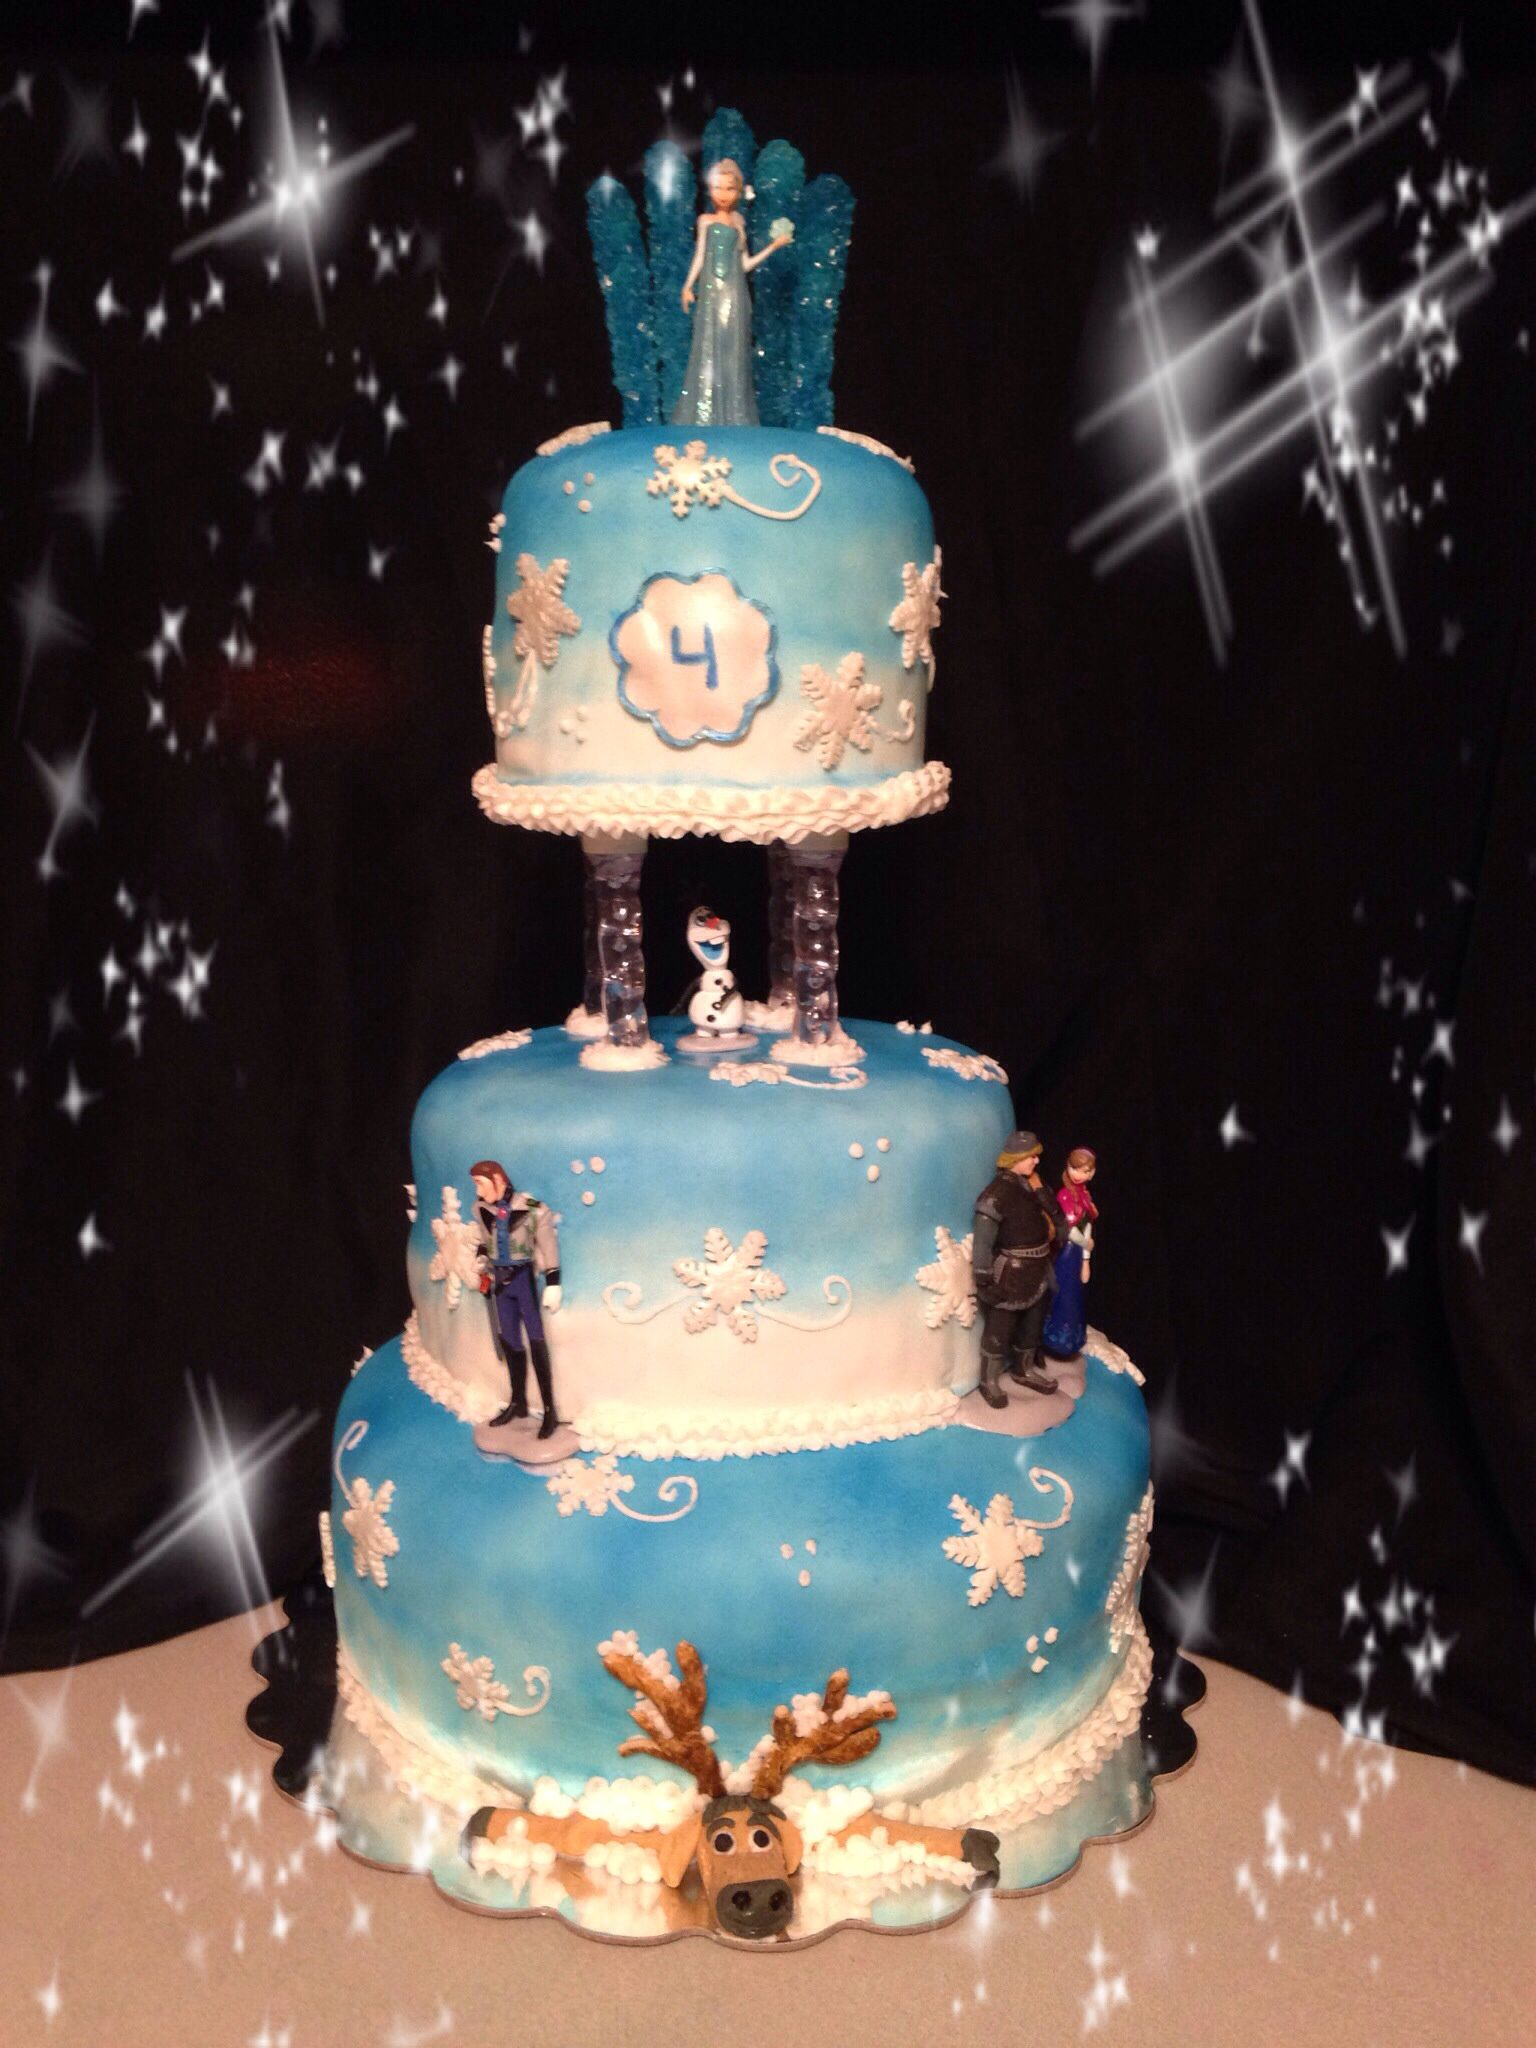 Groovy Disney Frozen Cake 3 Tier Beautiful Cake Elsa And Rock Candy On Funny Birthday Cards Online Elaedamsfinfo